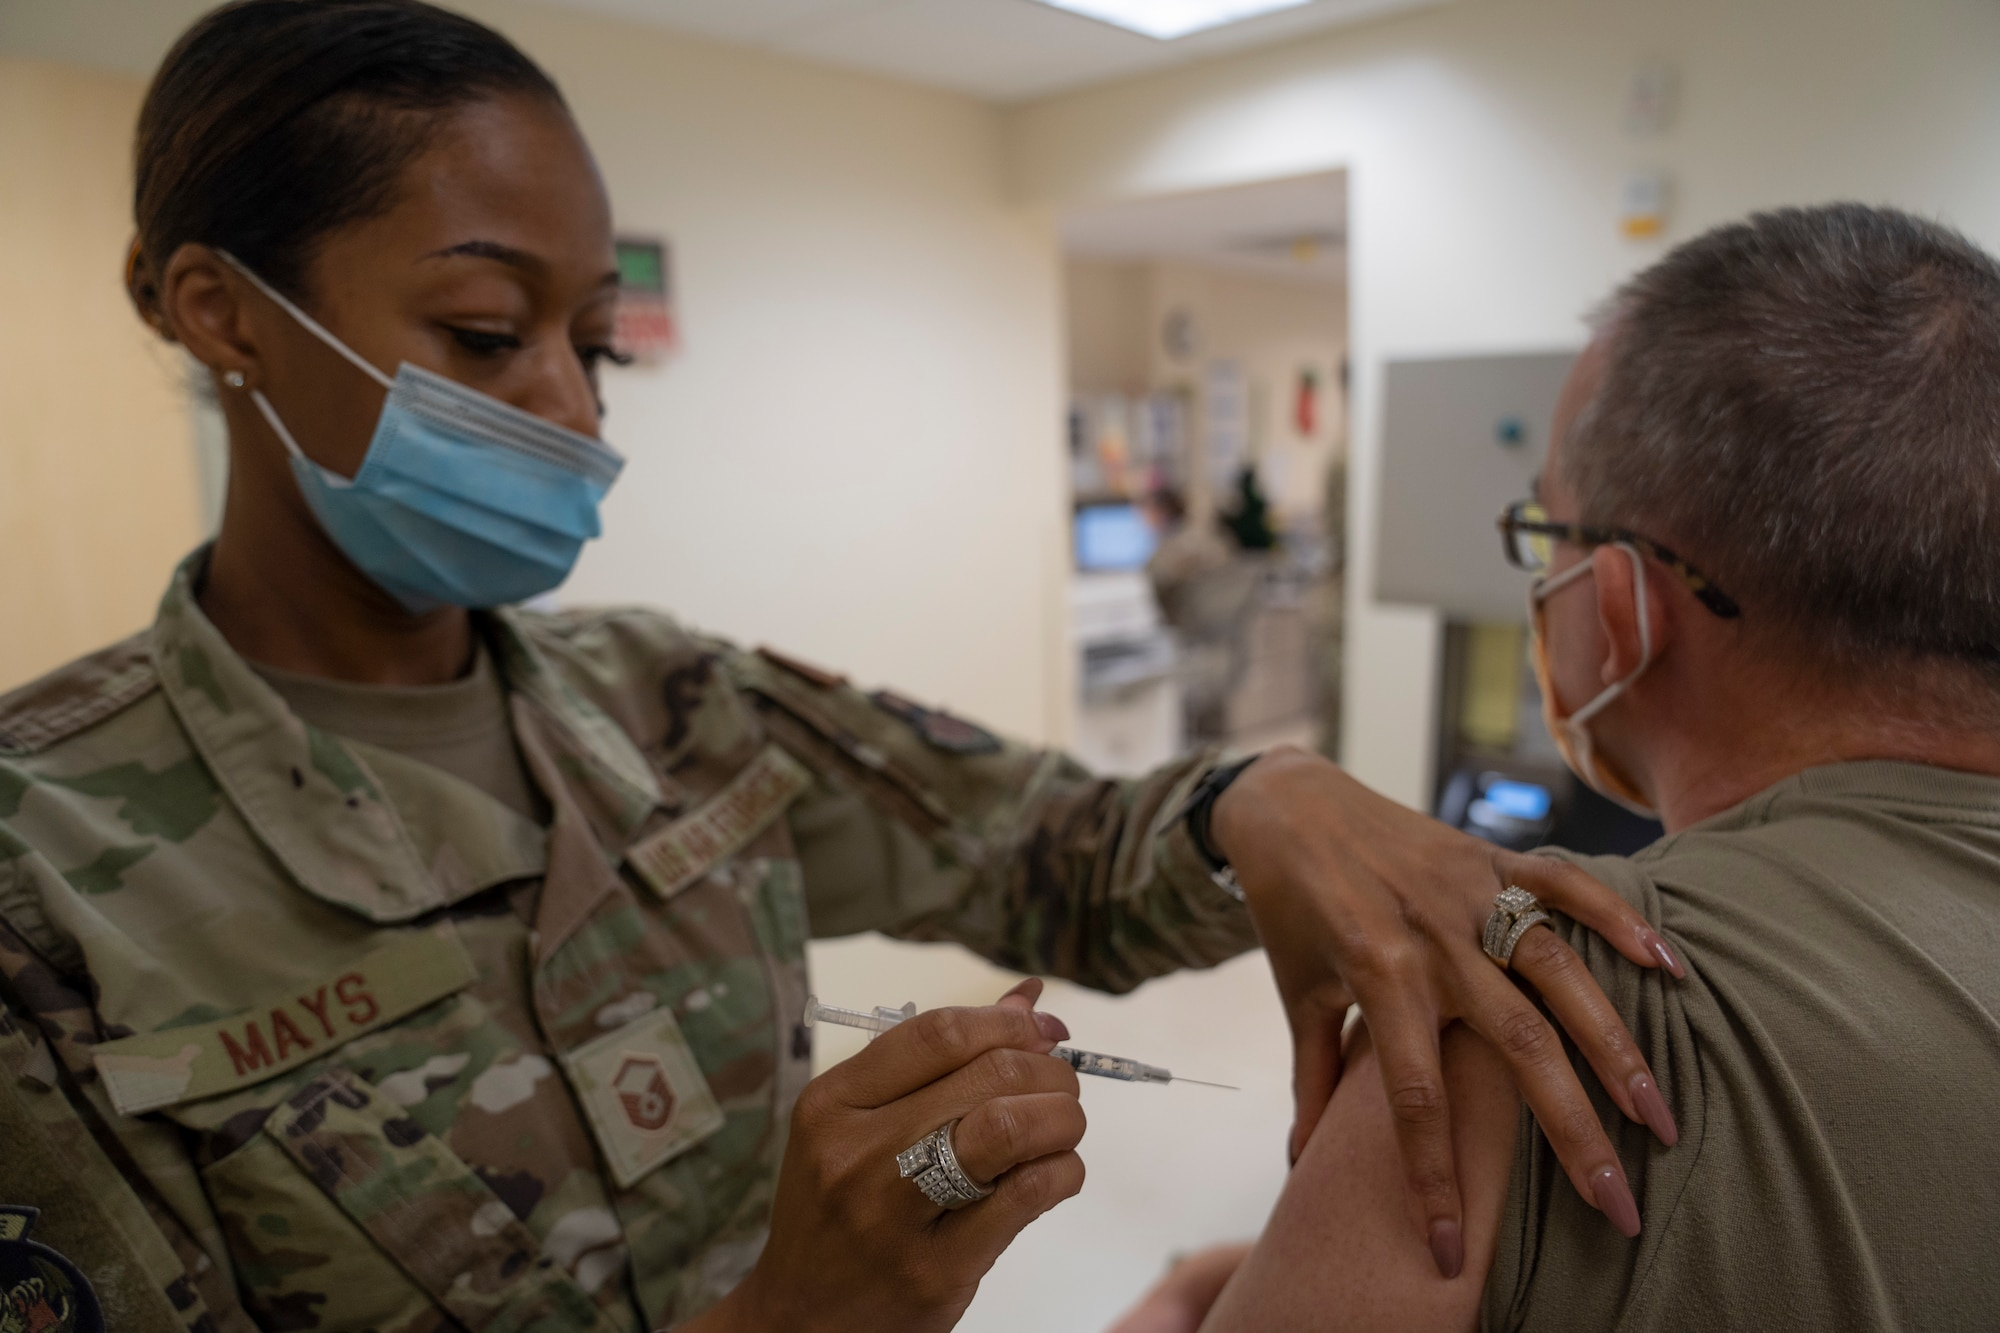 Master Sgt. La'Kisha Mays, 81st Healthcare Operations Squadron medical specialties flight chief, administers the COVID-19 vaccine to Col. Wayne Latack, 81st Medical Group internal medicine residency program director, inside the Keesler Medical Center at Keesler Air Force Base, Miss., Dec. 21, 2020. Members of the 81st MDG administered the COVID-19 vaccine to Keesler first responders and members of the Armed Forces Retirement Home in Gulfport, Miss. (U.S. Air Force photo by Airman 1st Class Kimberly L. Mueller)